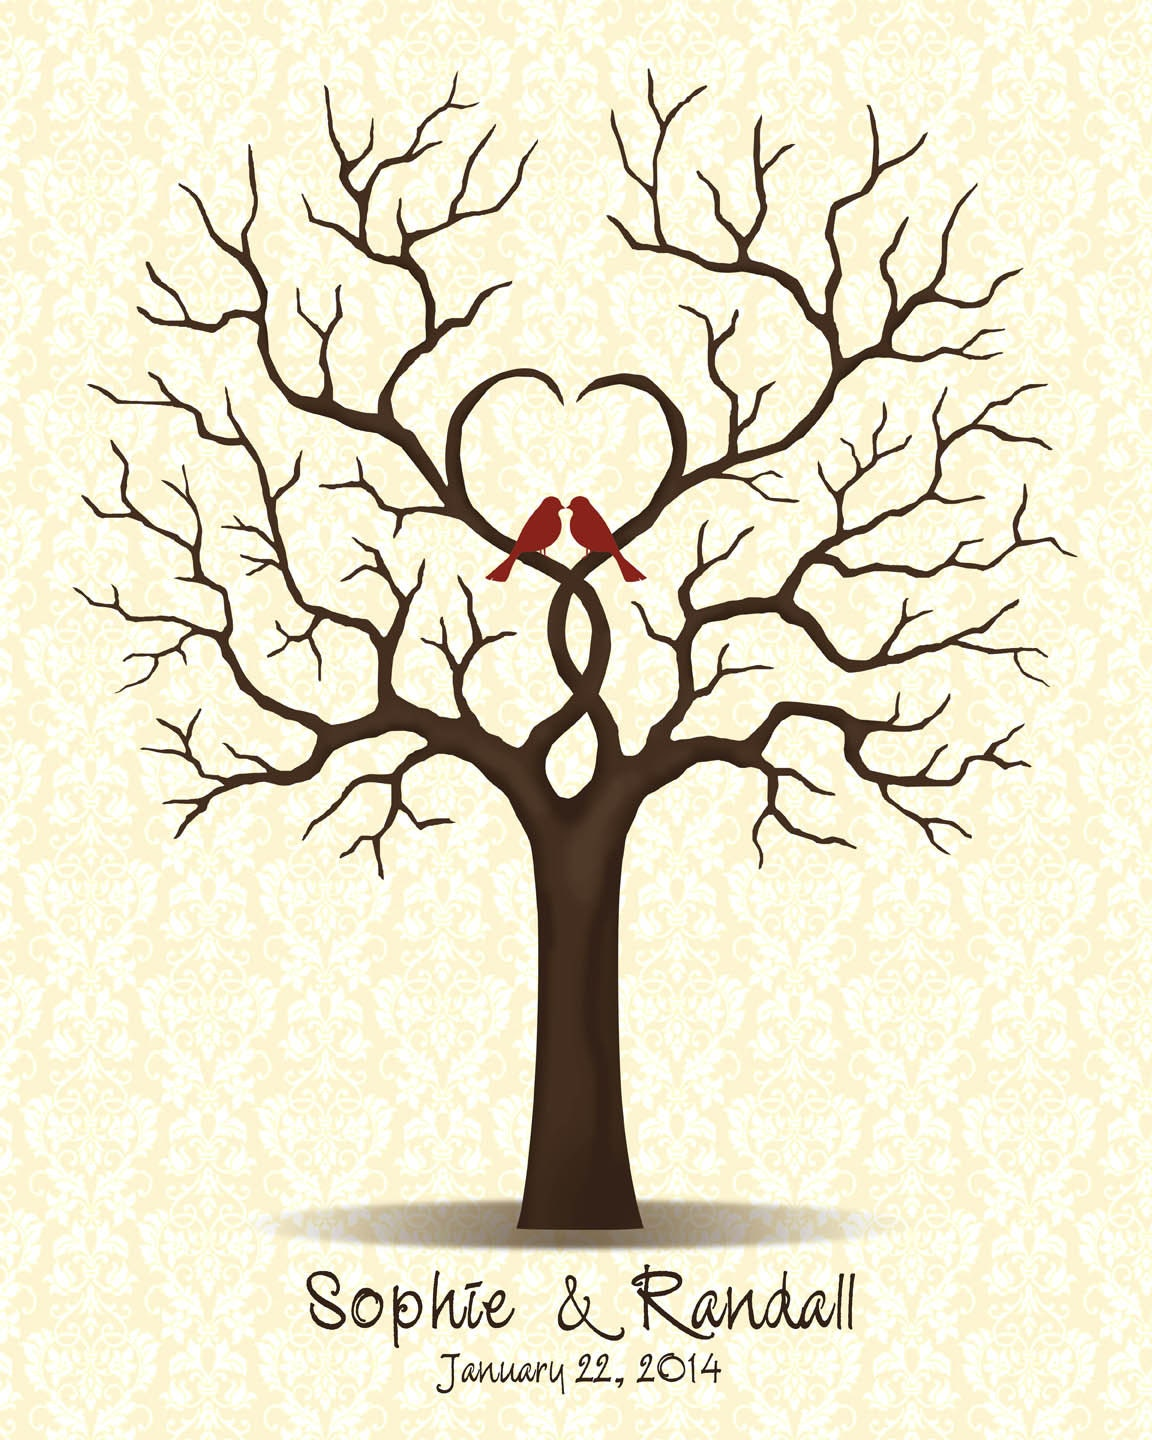 Wedding Tree Genealogy Chart By Melangeriedesign On Etsy: Wedding Guestbook Tree Guest Book With Love Birds Family Tree